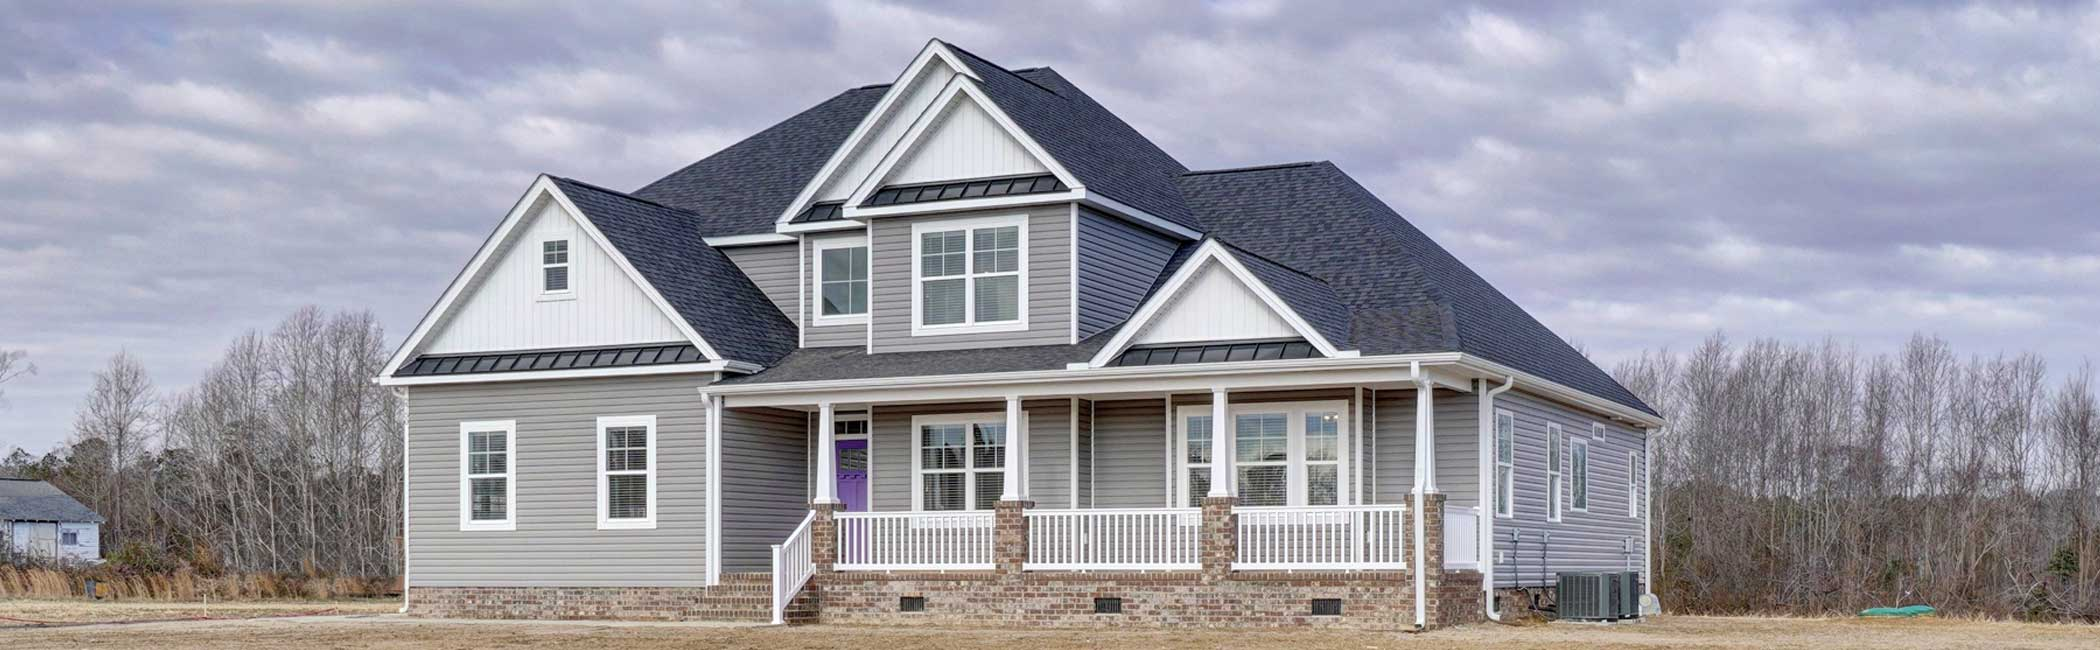 The Sussex floor plan by AB Homes with gray siding white trim and purple door